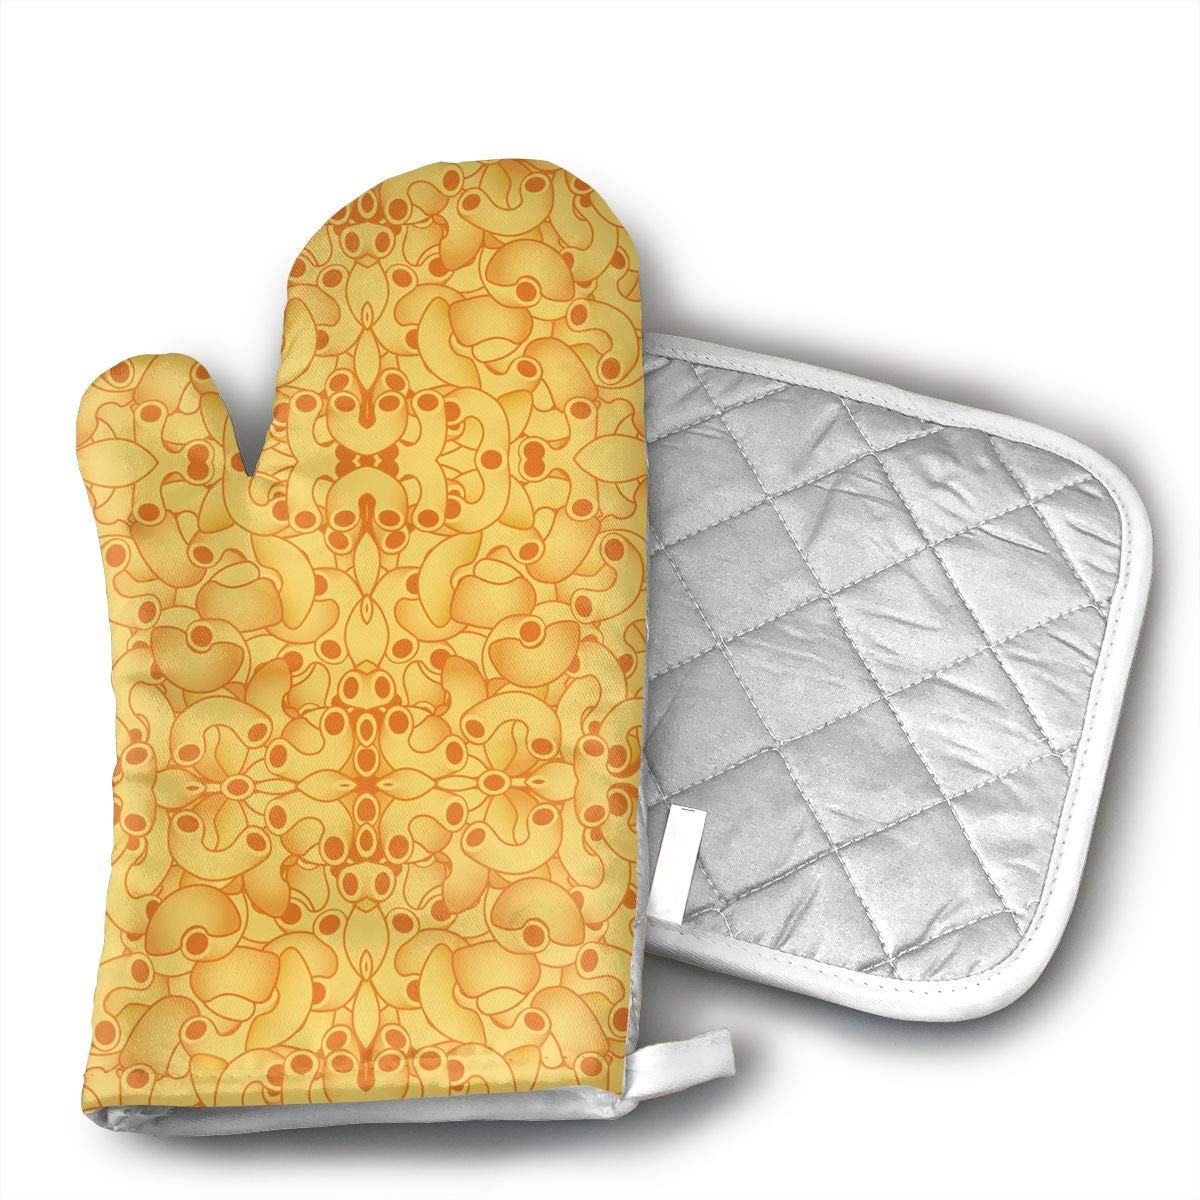 QEDGC Macaroni and Cheese Grill Oven Gloves ¨C Heat Resistant Gloves ¨C BBQ Gloves for Cooking, Grilling, Baking